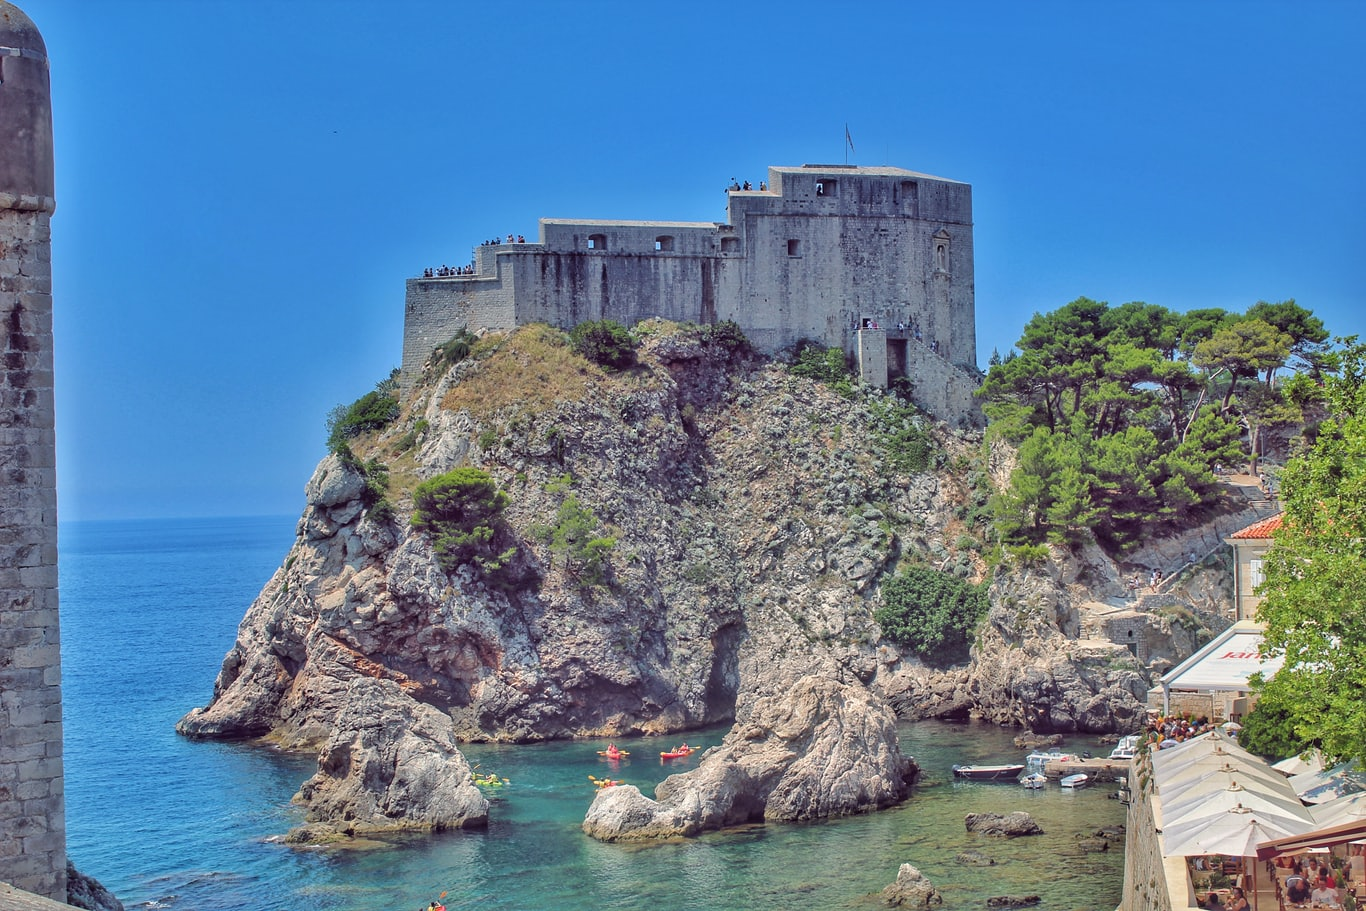 Dubrovnik castle during during daytime